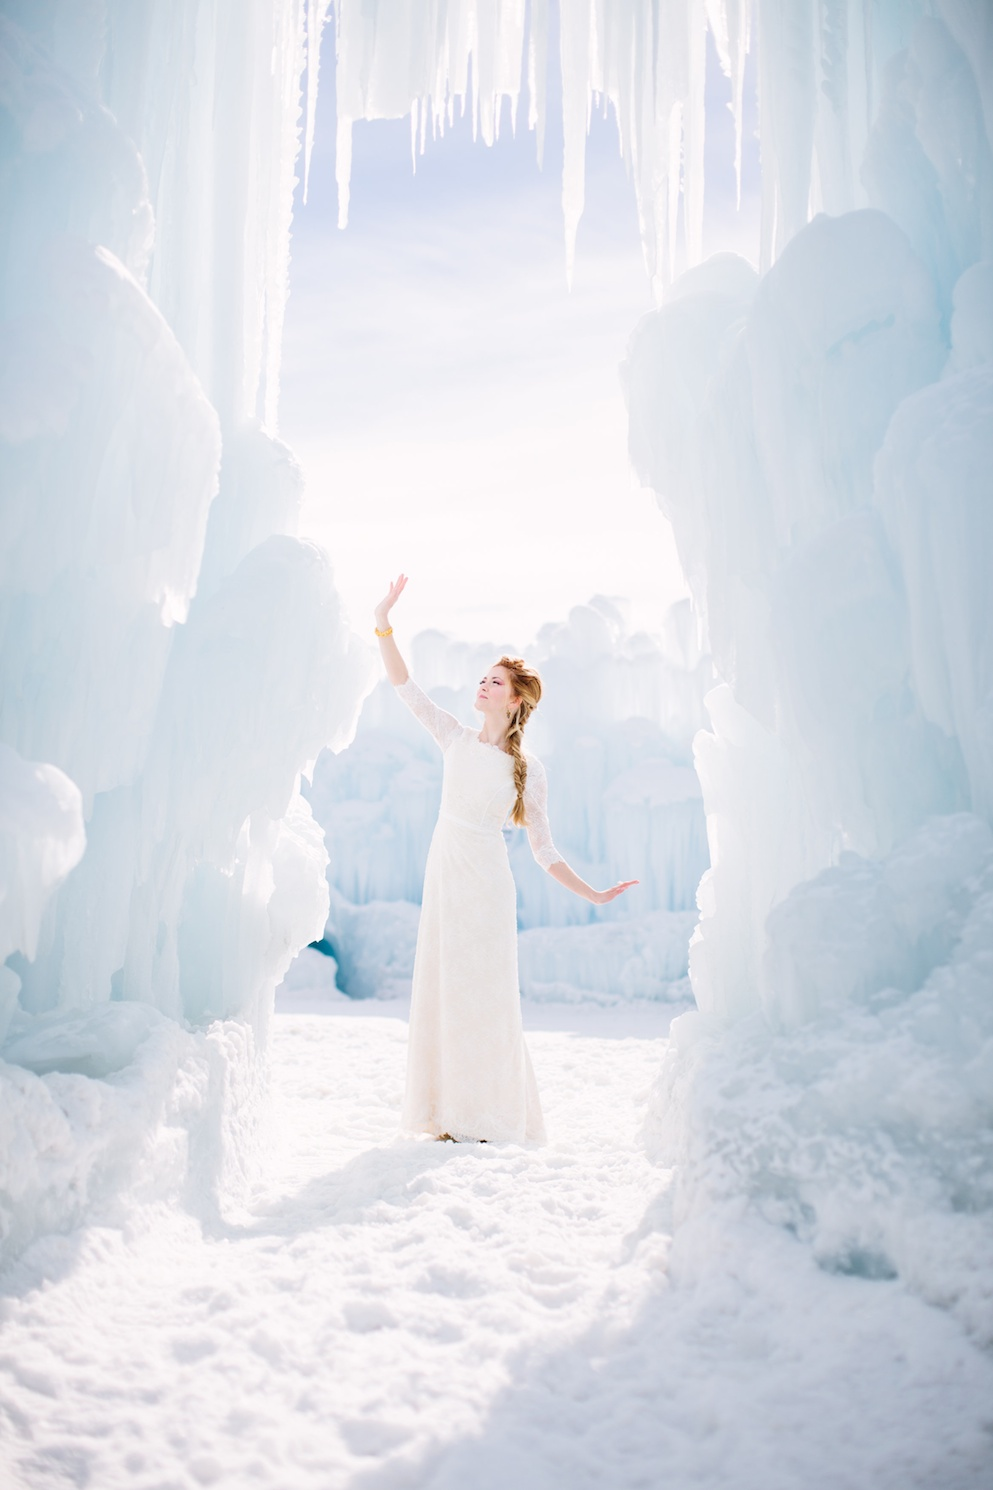 Disney's Frozen Inspired Wedding Shoot midway ice castles calie rose wedding flowers utah florist meredith carlson photography winter wedding ice inspired wedding ice wedding